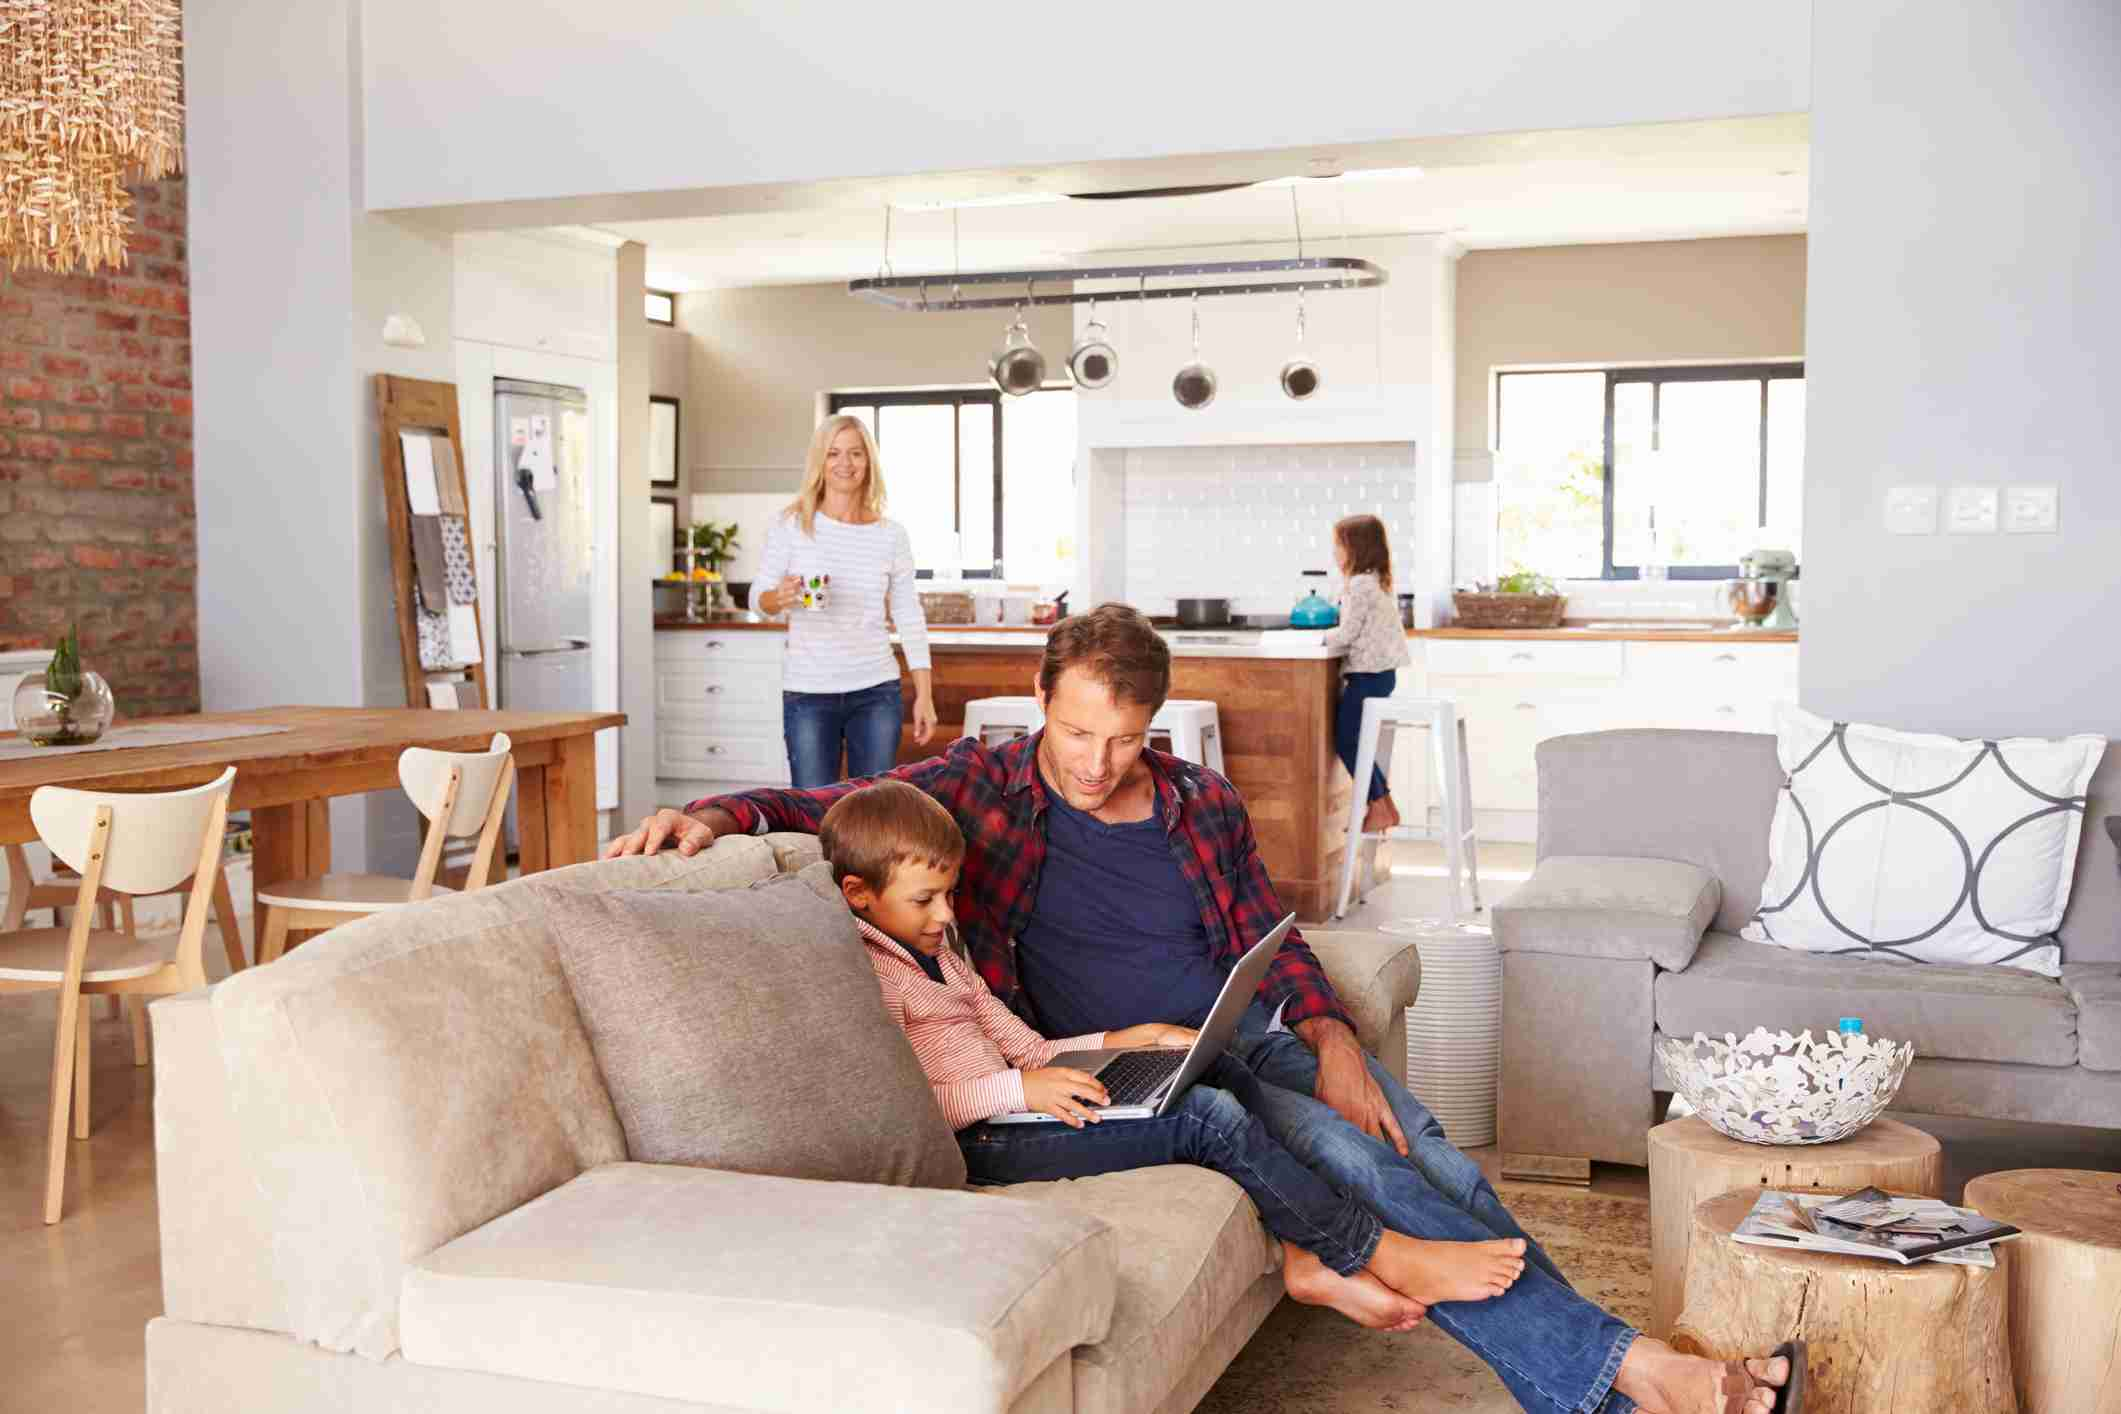 iStock 475946518 - At Home Property Management